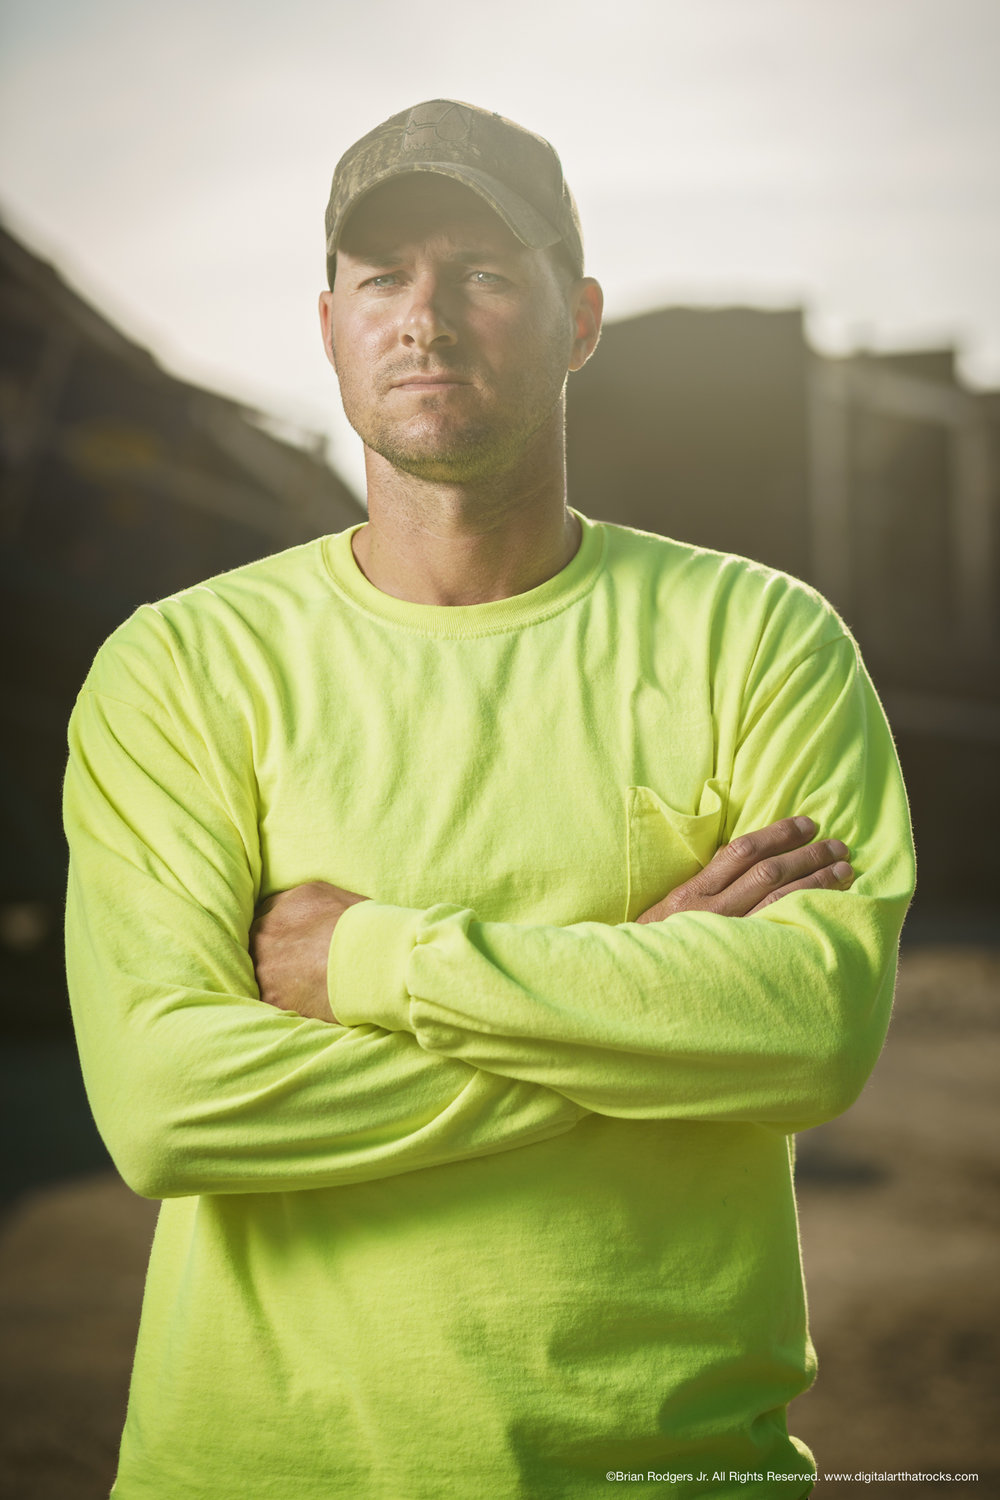 south-bend-commercial-portrait-asphalt-construction-worker-brian-rodgers-jr-digital-art-that-rocks-south-bend